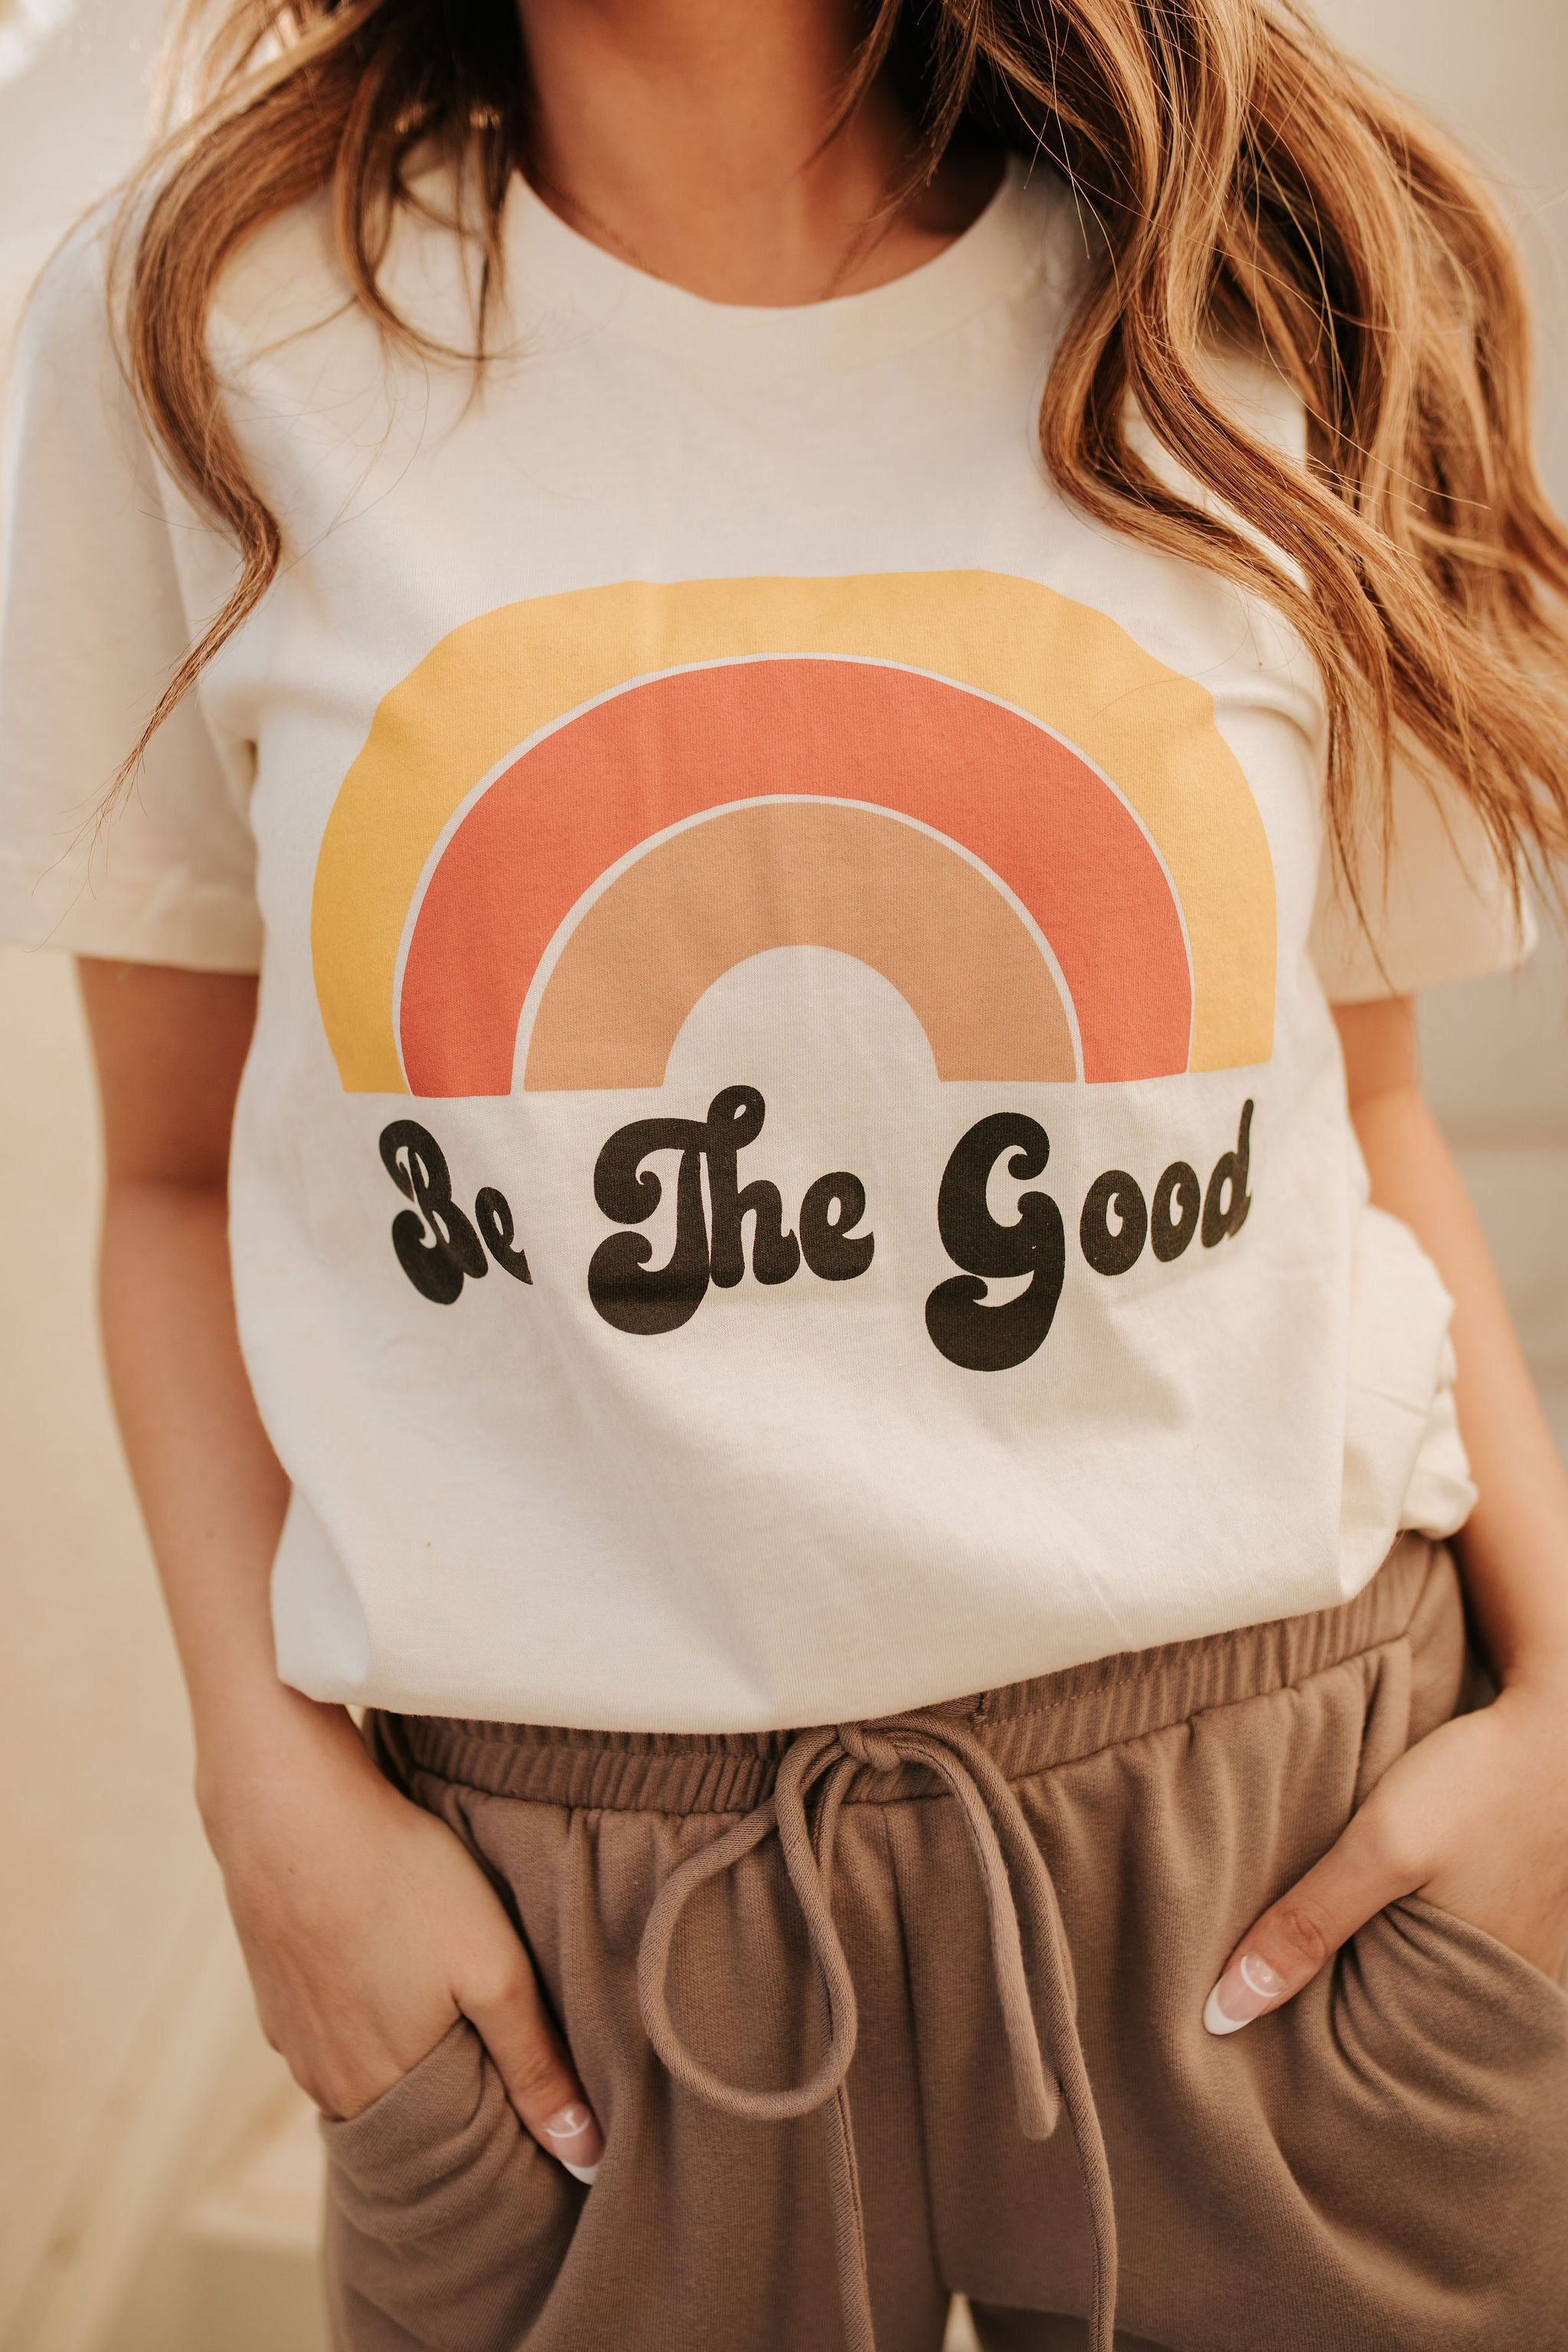 THE BE THE GOOD RAINBOW GRAPHIC TEE IN CREAM